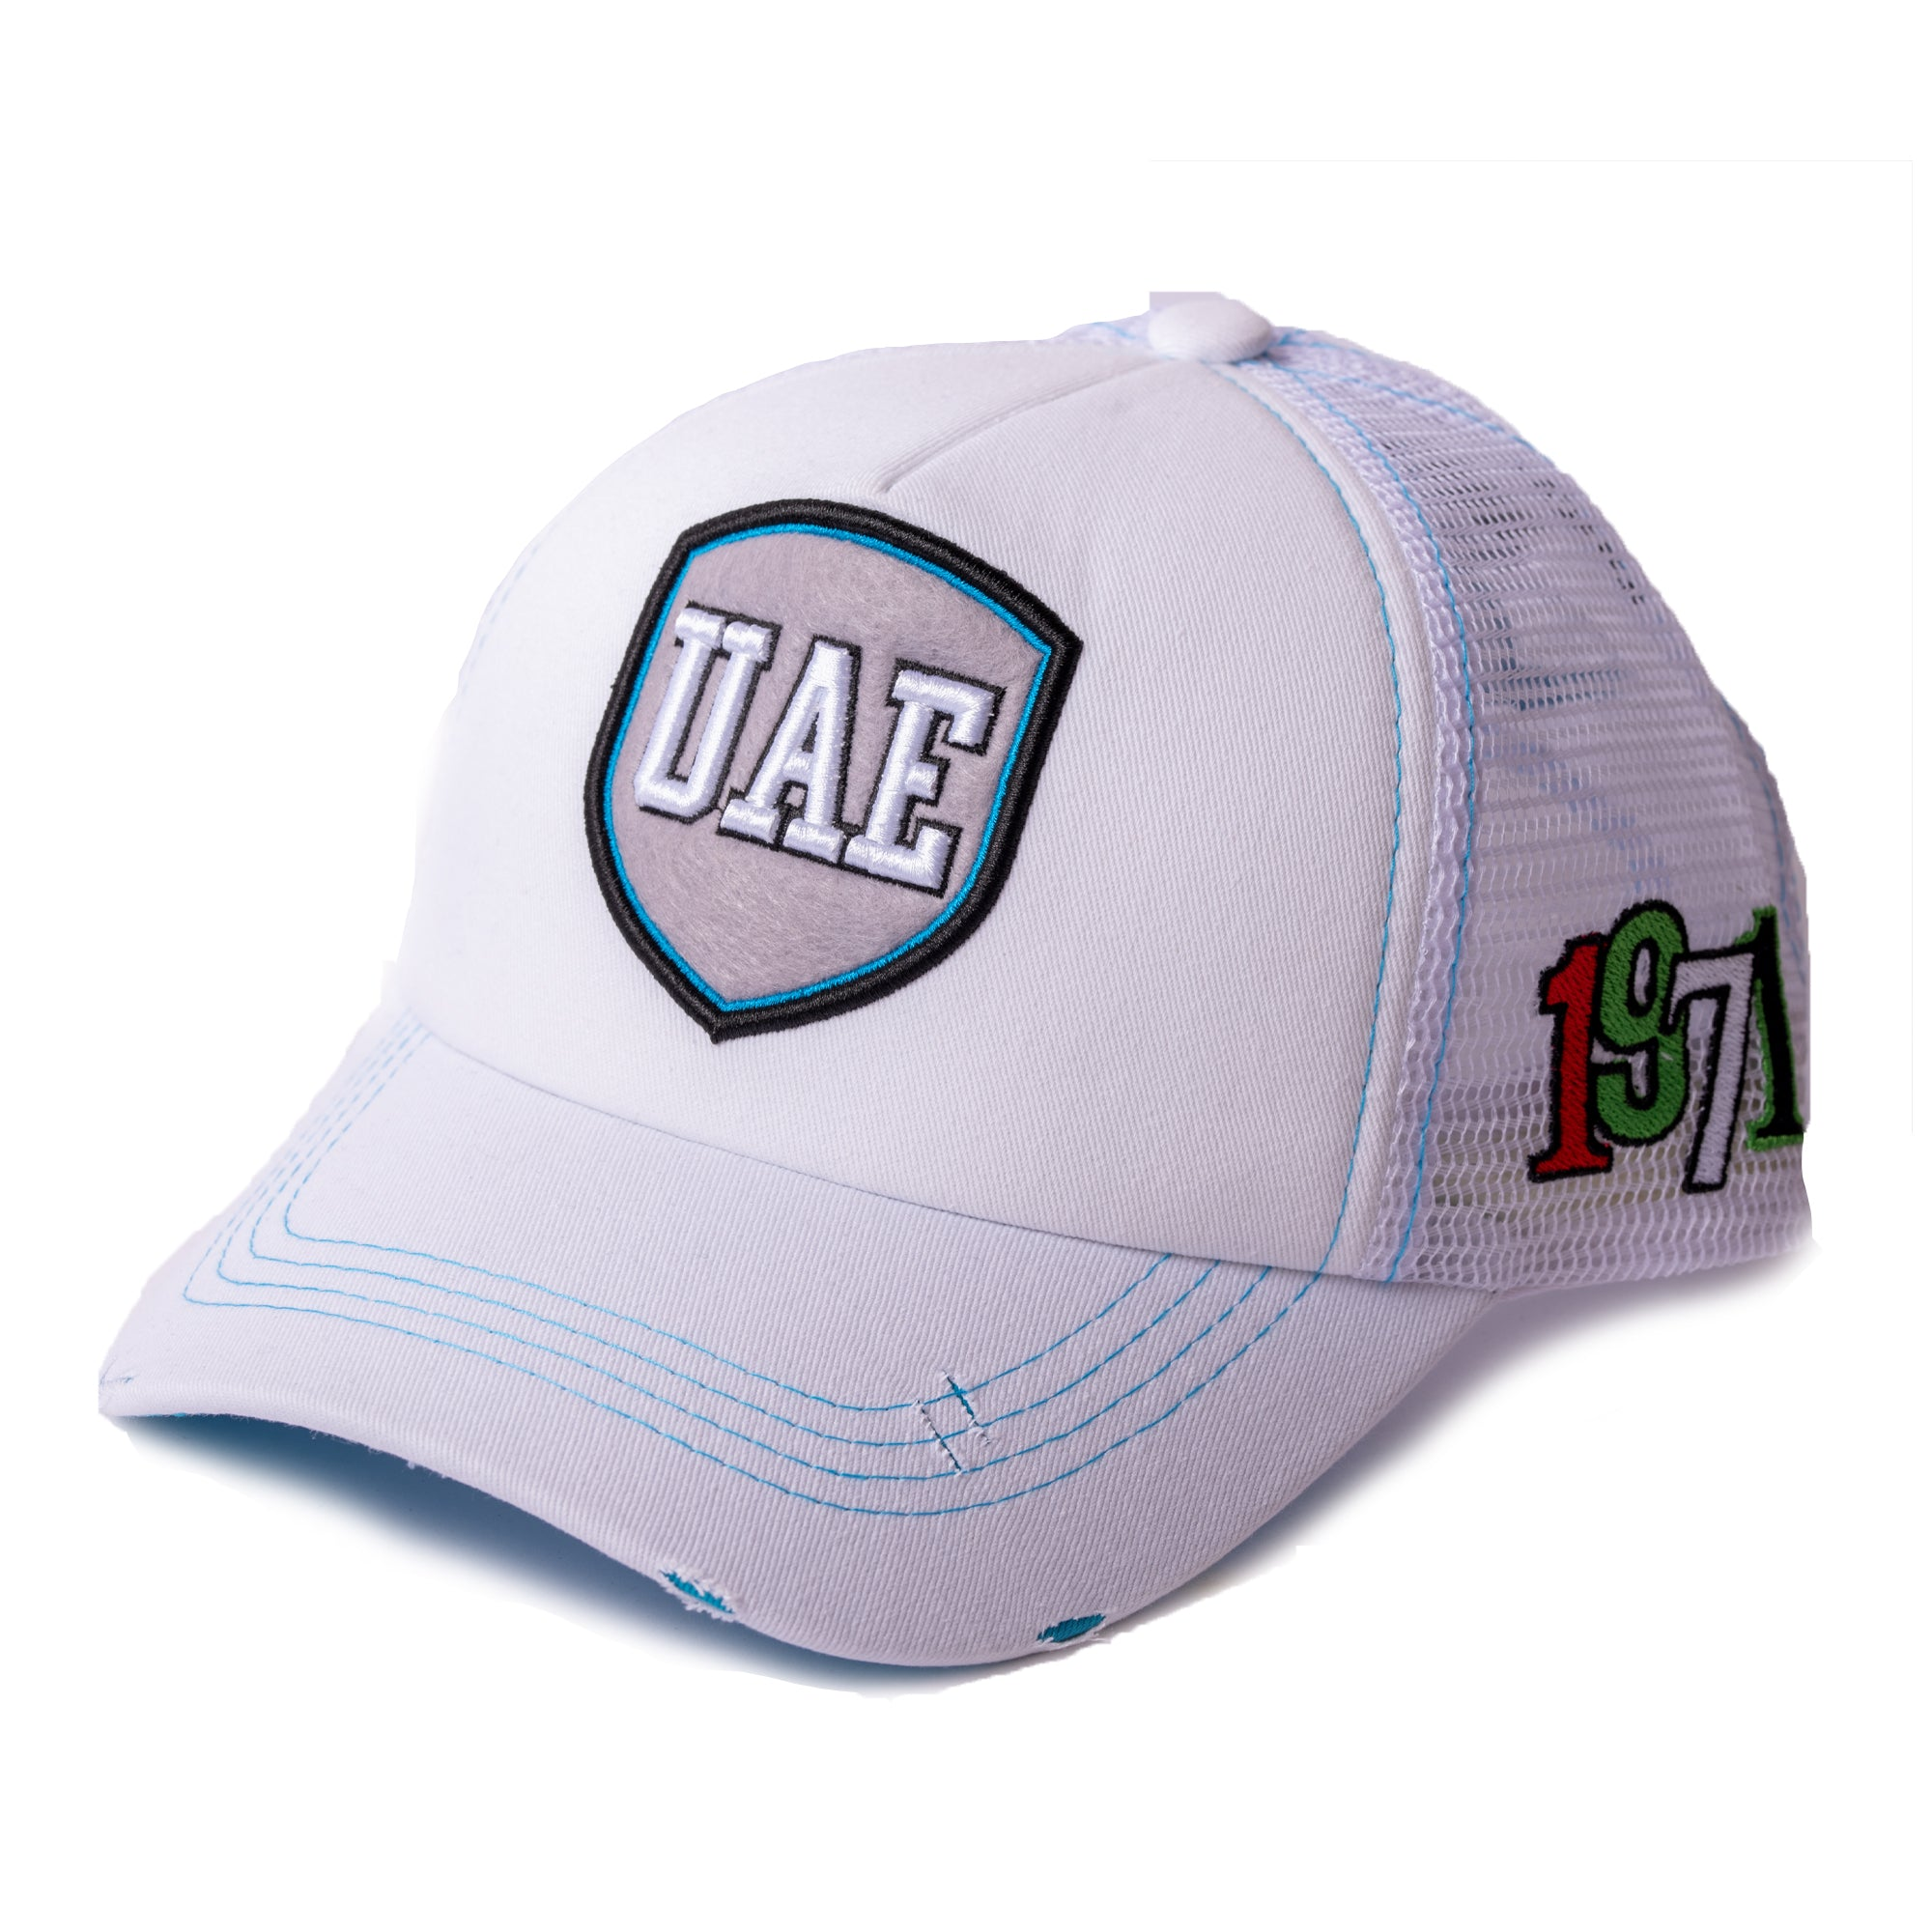 UAE Full White Cap